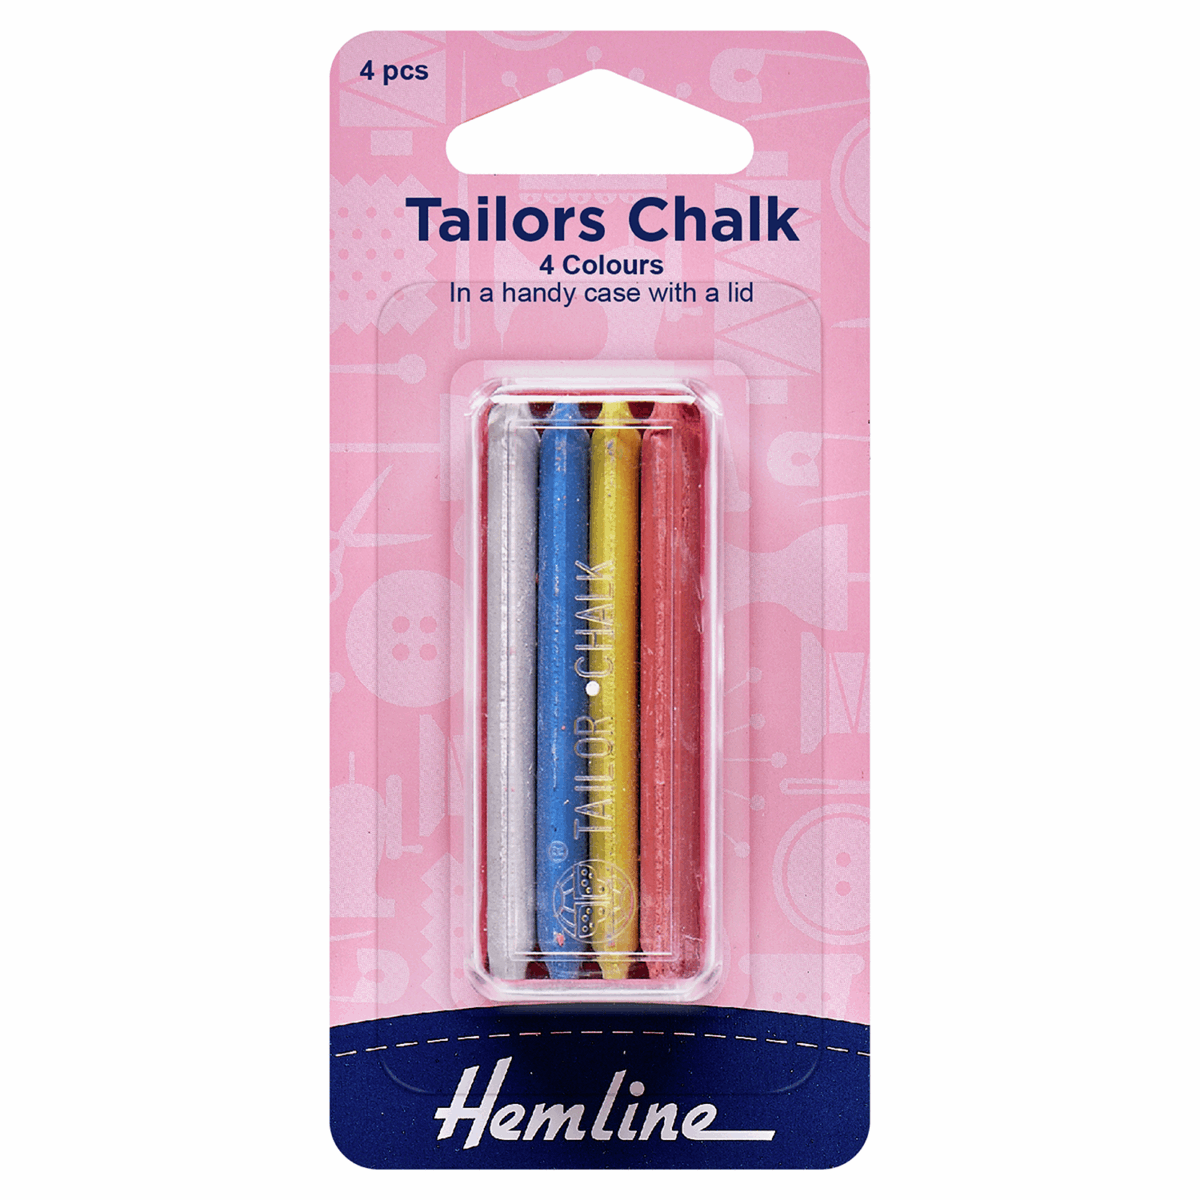 Tailors Chalk Pack of 4 Colours